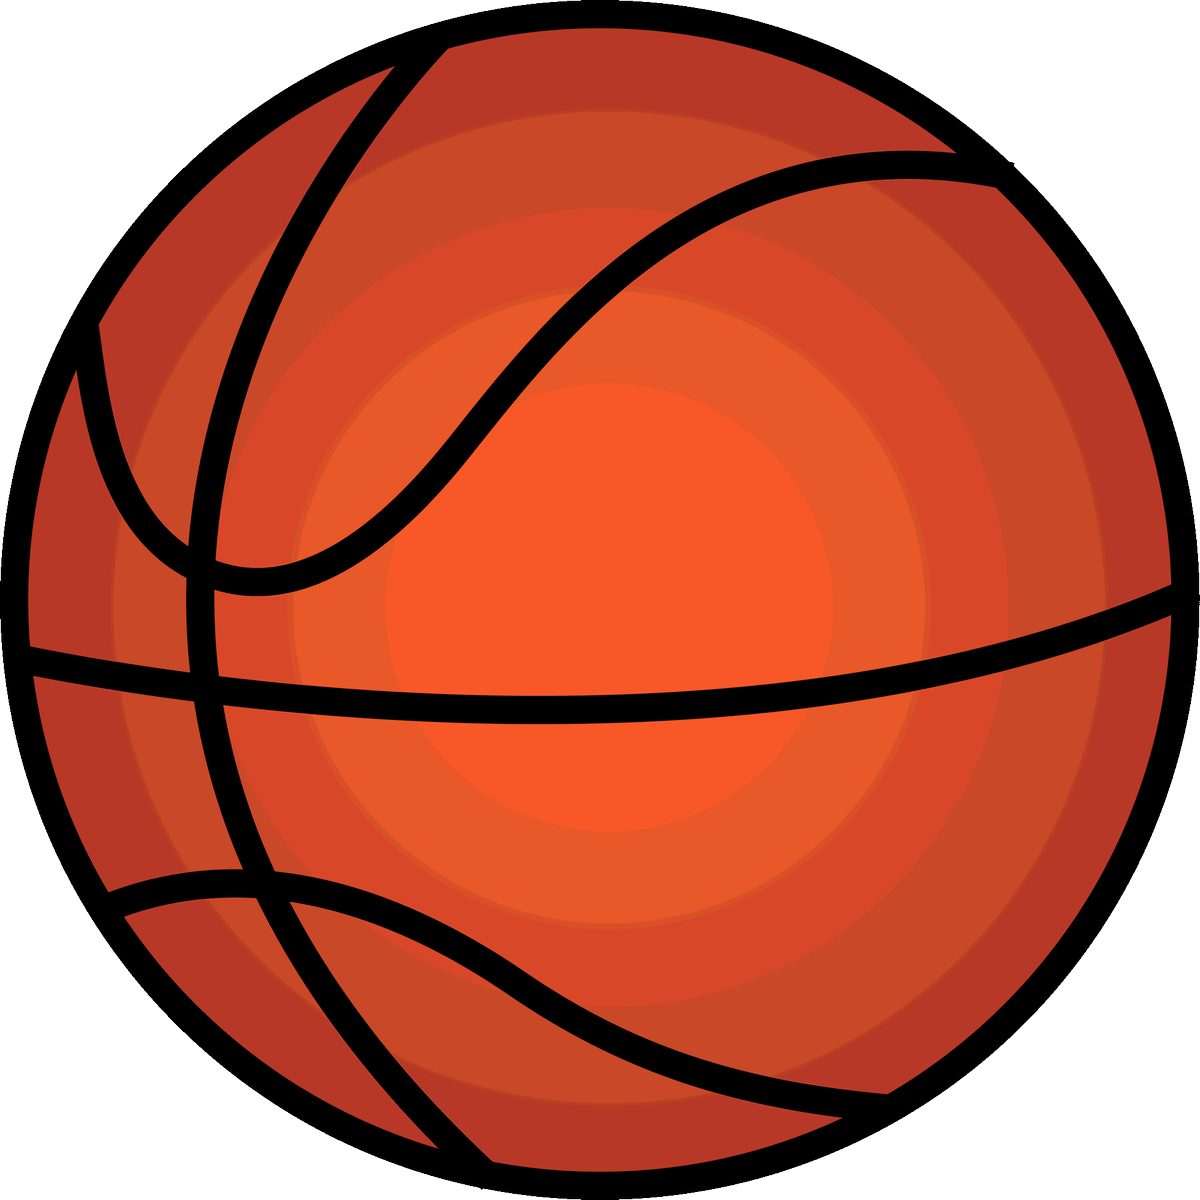 Free girl basketball clipart clipart free Washington Local SD on Twitter: